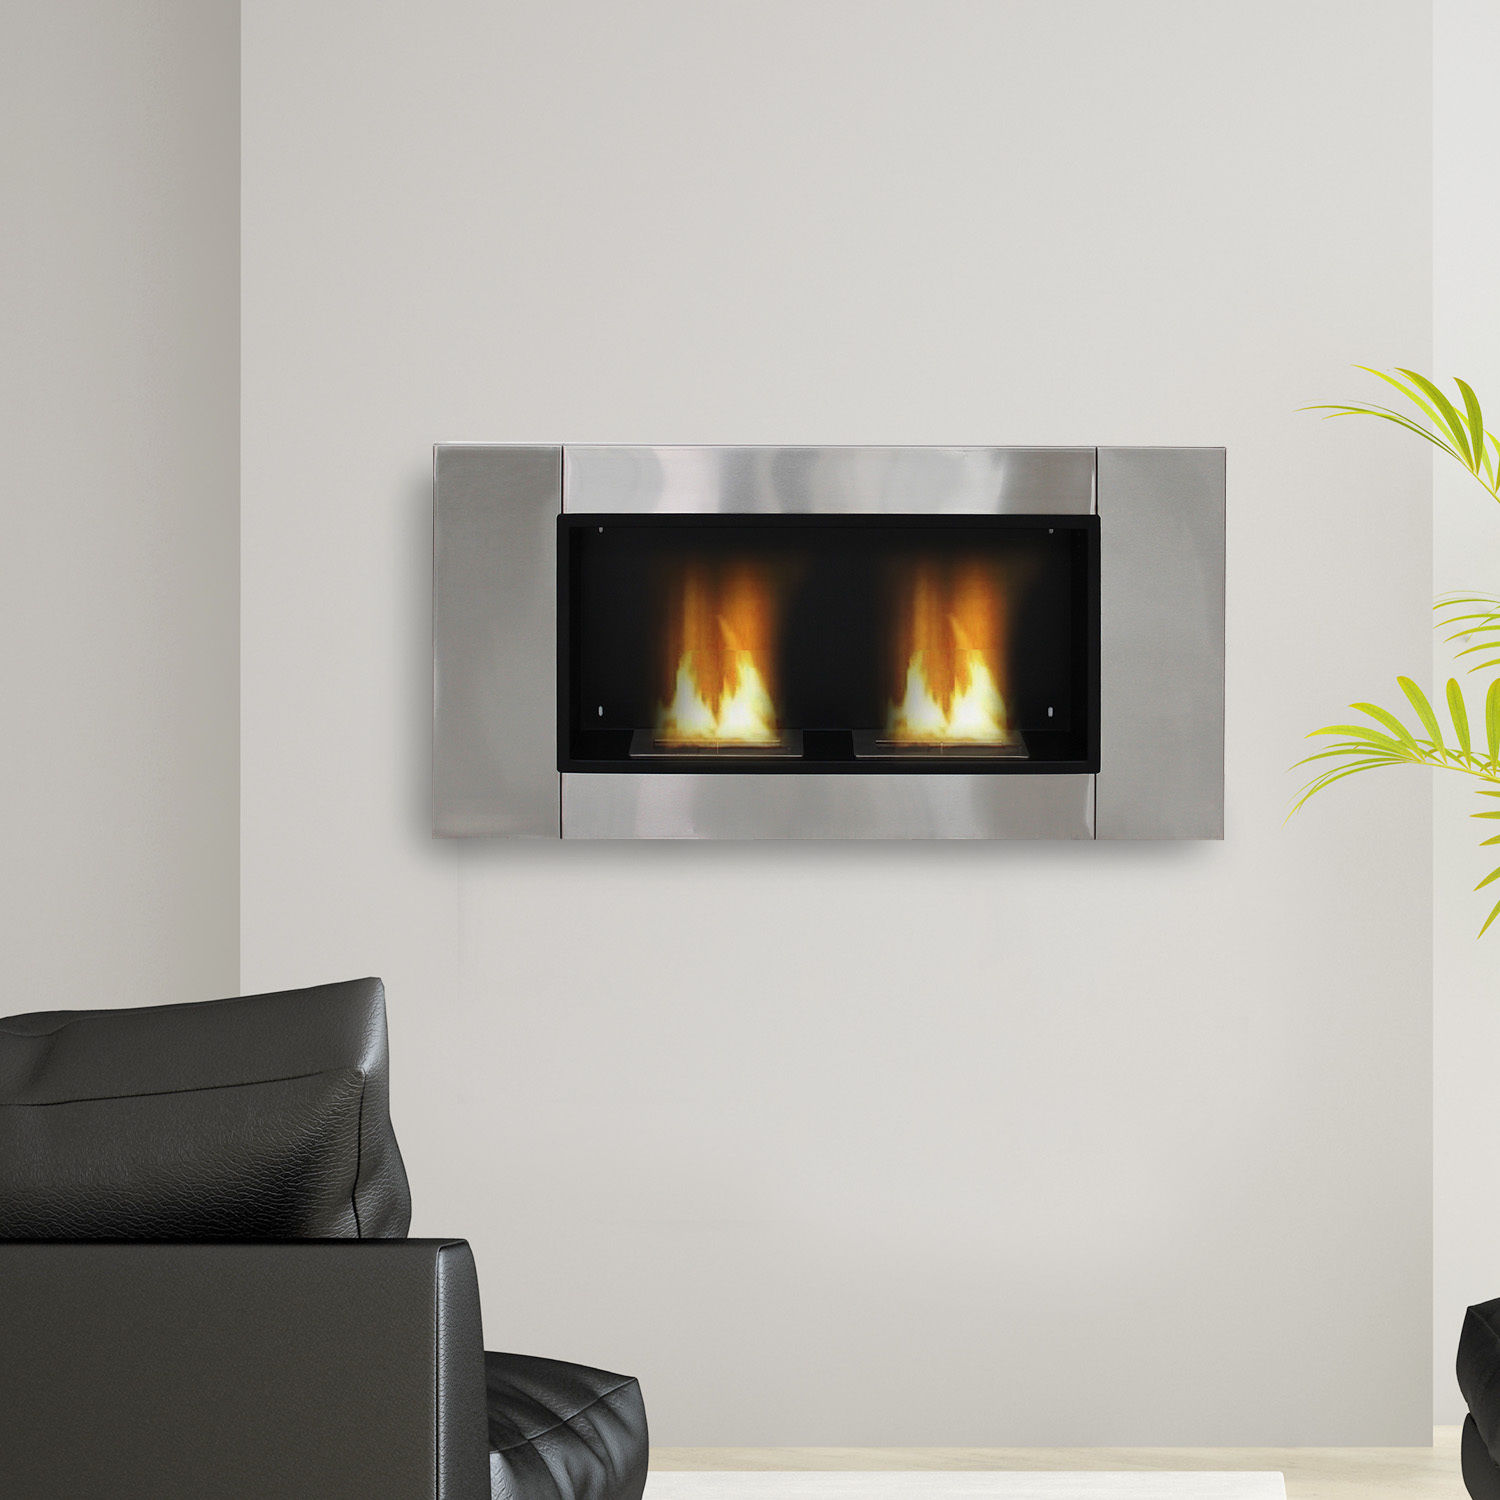 Image of CAD $196.99 HOMCOM Ventless Bio Ethanol Fireplace Recessed Wall Mounted Heater / Gel Alcohol 2 Burners Indoor Canada 46655323354